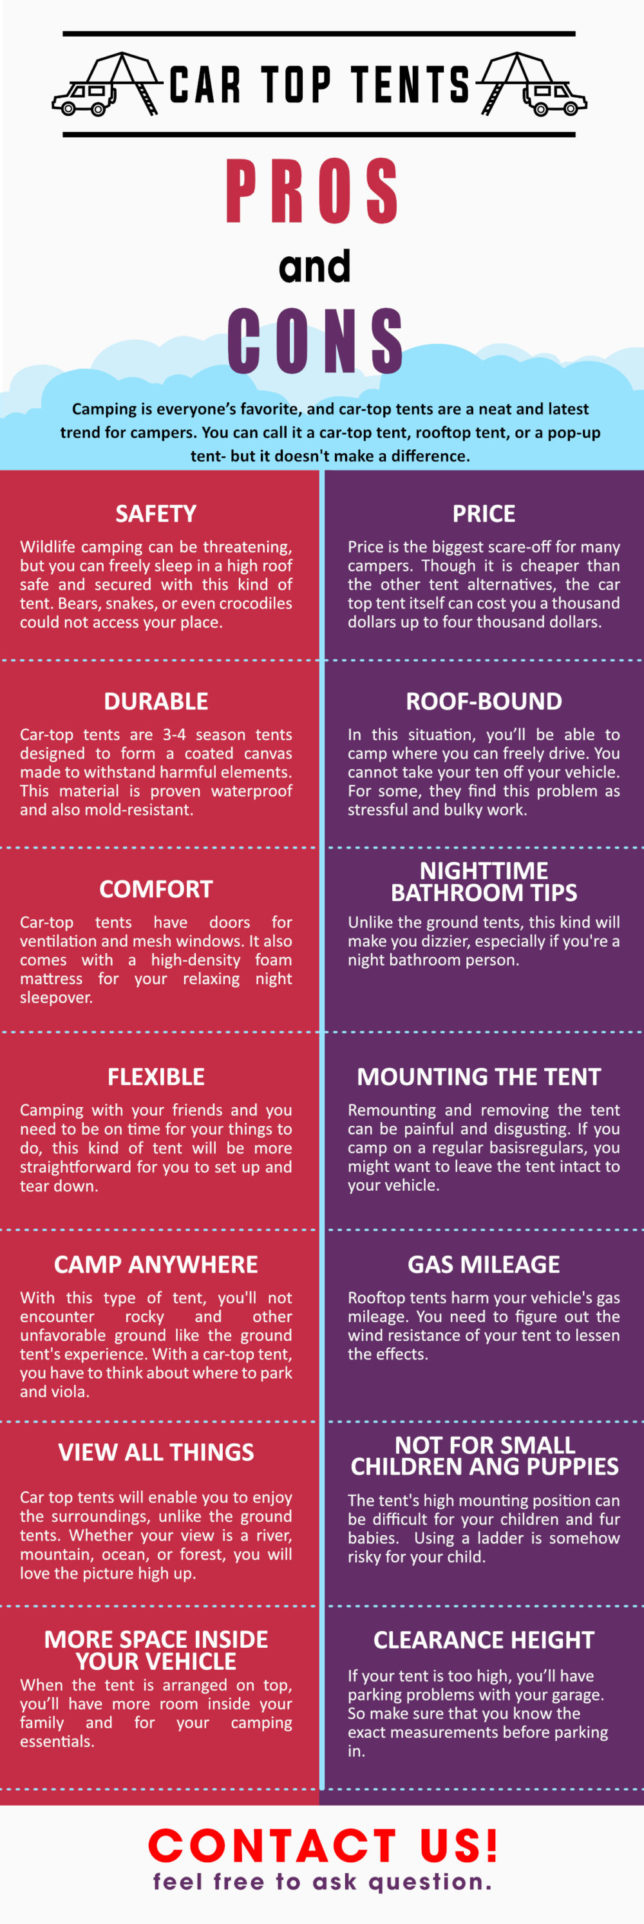 Car Top Tents: Pros and Cons